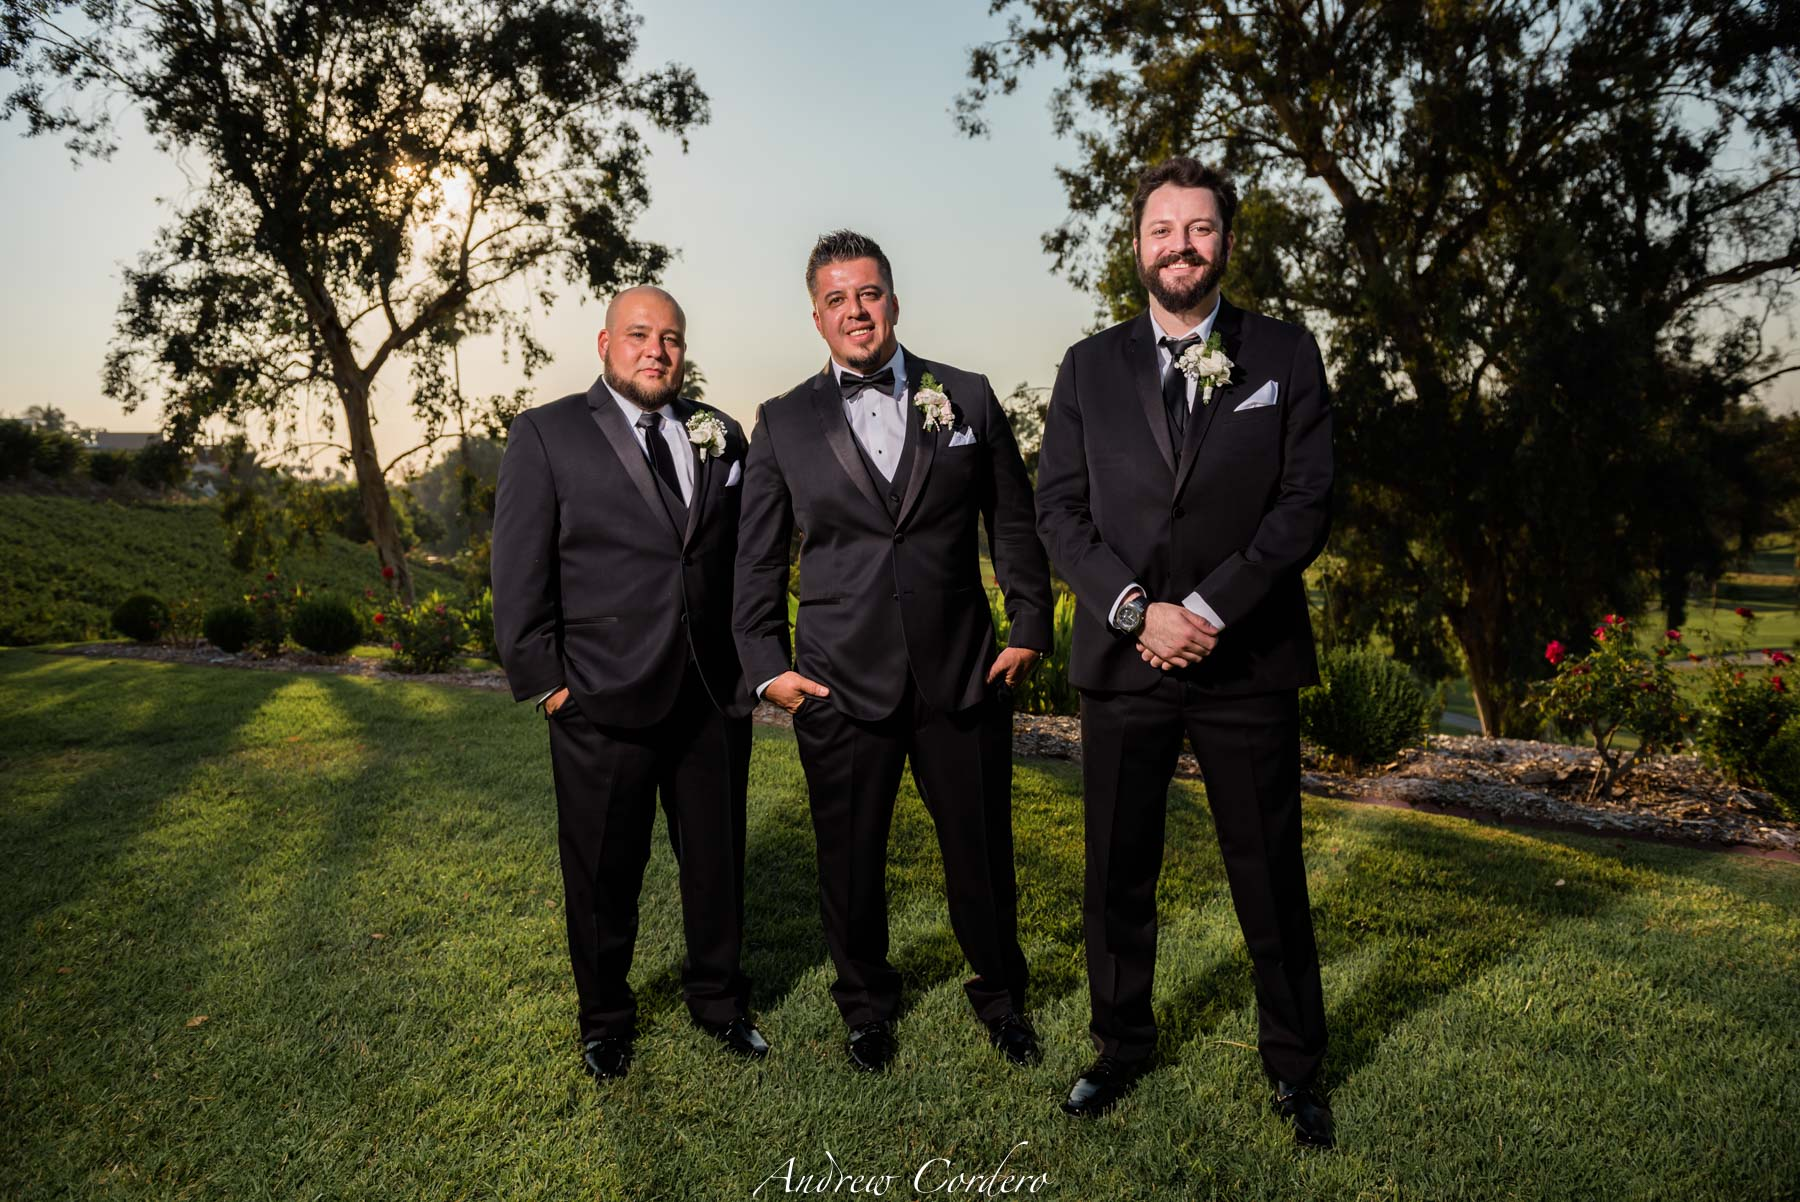 canyon-crest-country-club-riverside-wedding-jose-and-espie-4787.JPG